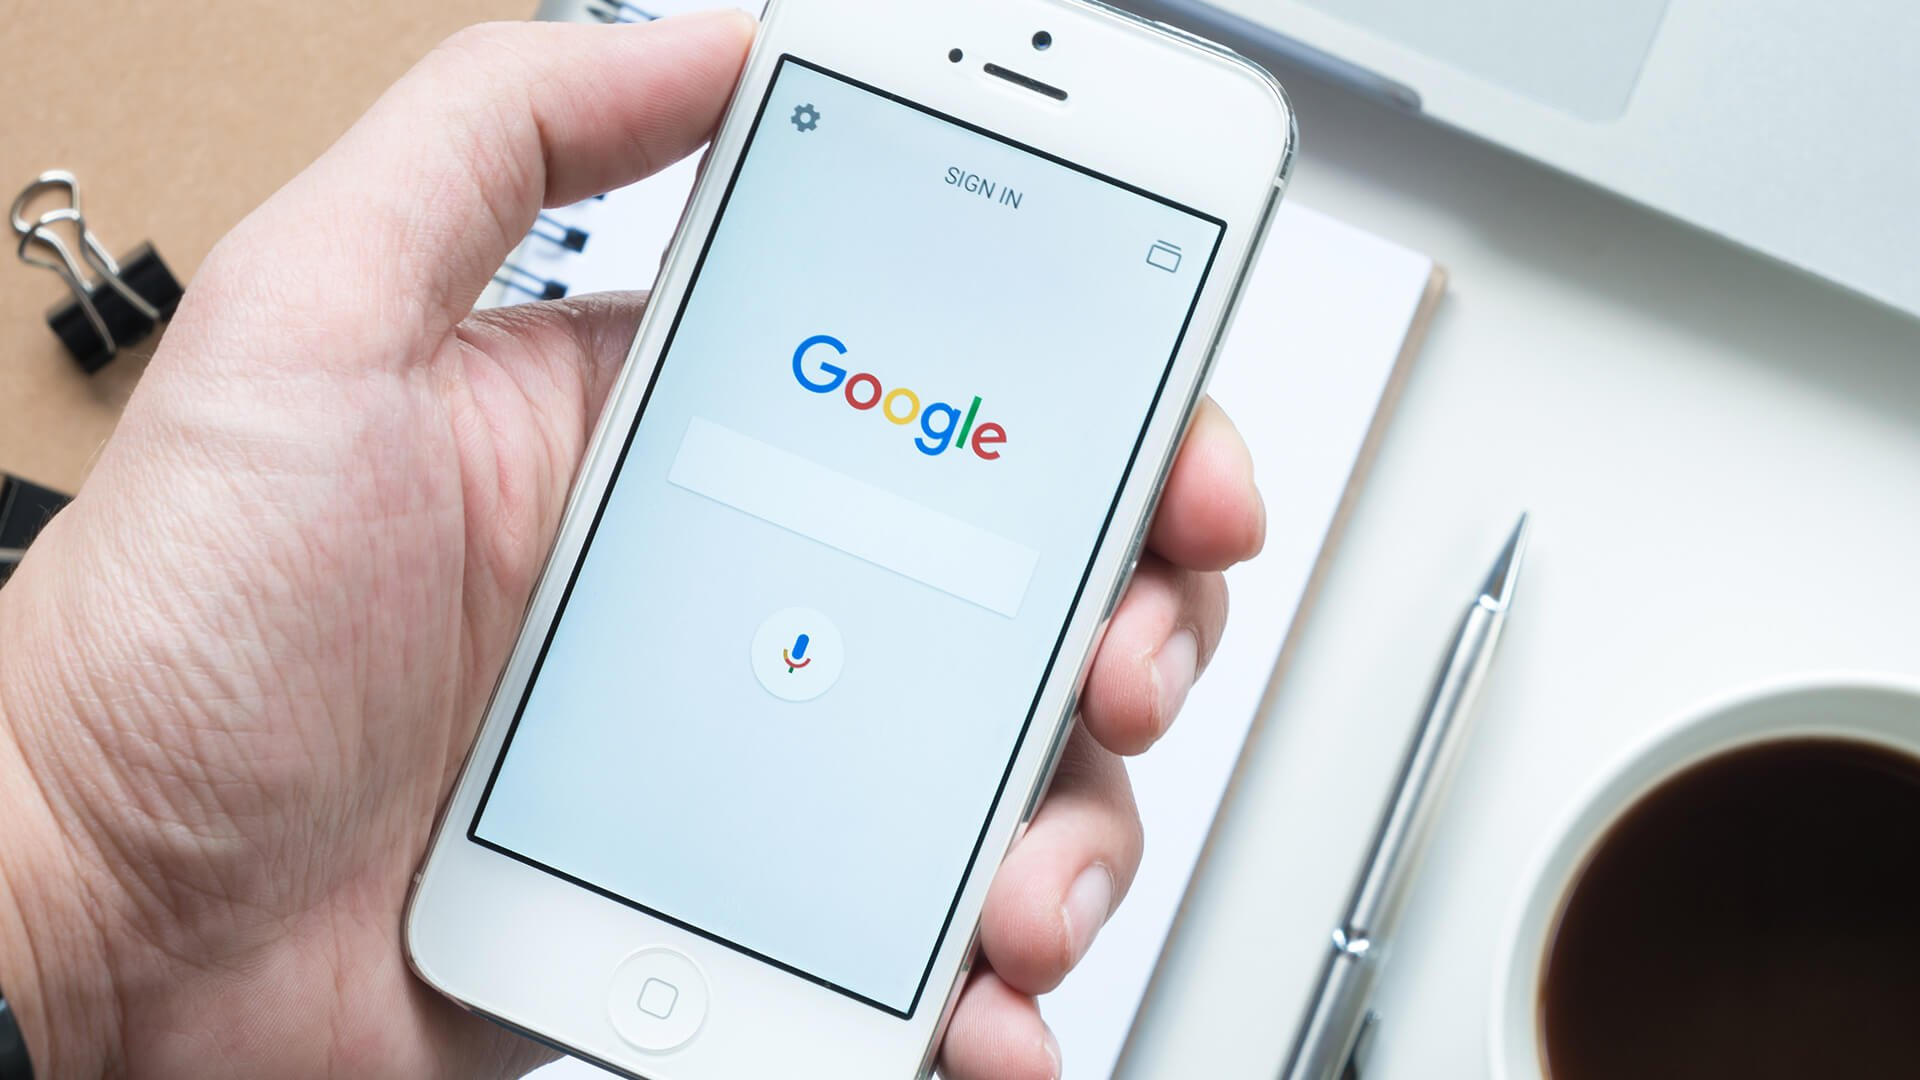 Google adds new 'save' & bookmarking feature, which you can access in a new hamburger menu